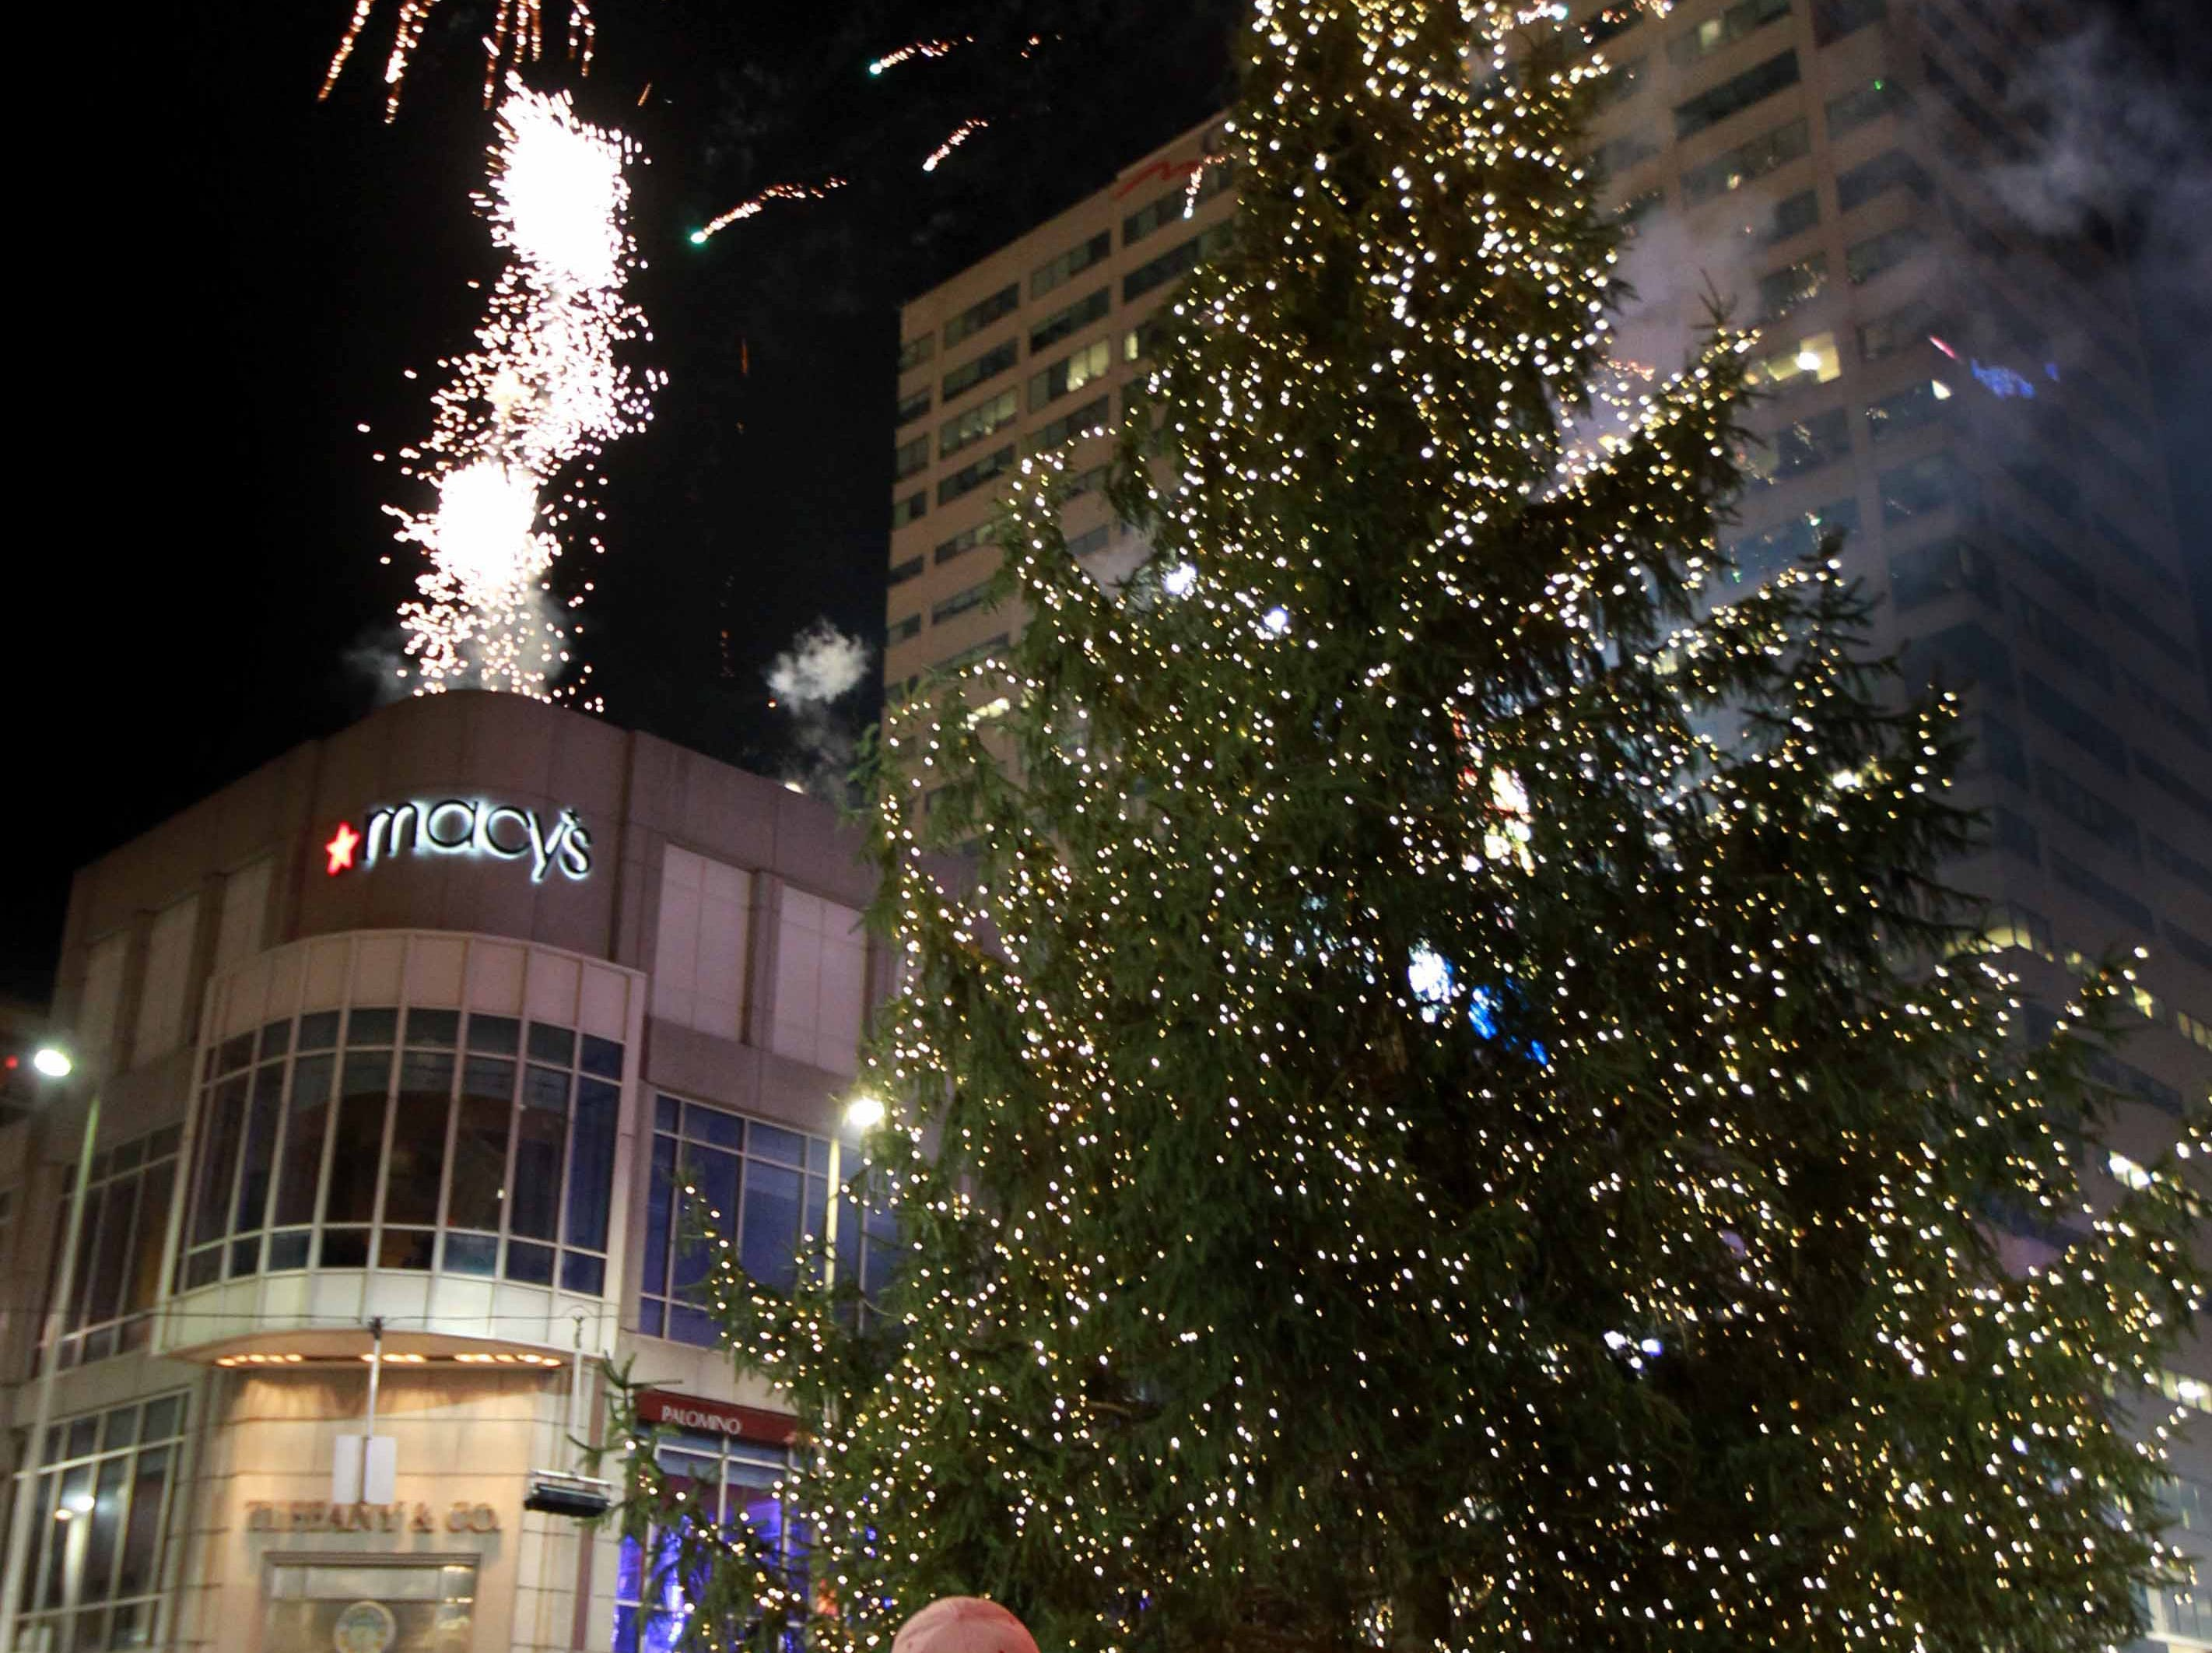 2010: The crowd enjoys watching fireworks as they go off over the newly lit Norwood Spruce Christmas tree that stands about 60 feet tall from Lloyd Hurst of Wooster, Ohio, during ceremonies for the Annual Tree Lighting at Fountain square Friday Nov. 26.